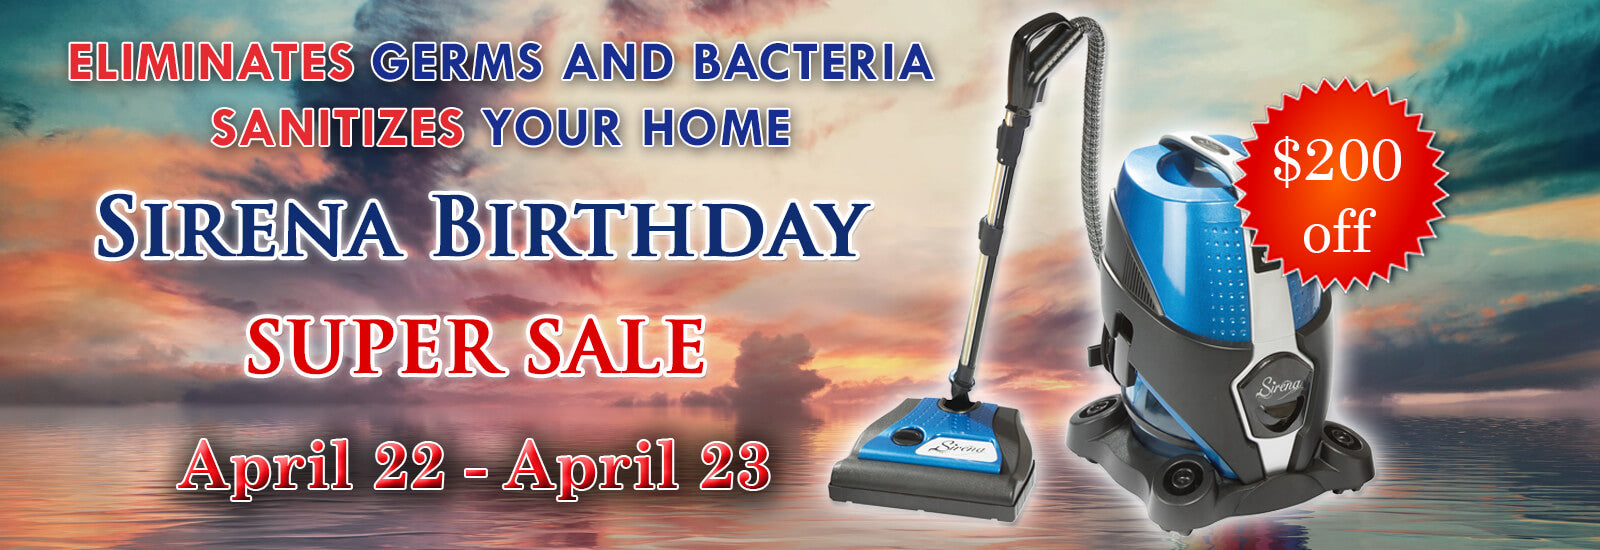 Sirena Birthday Special (USA) - Get $200 Off Sirena Vacuum Cleaner